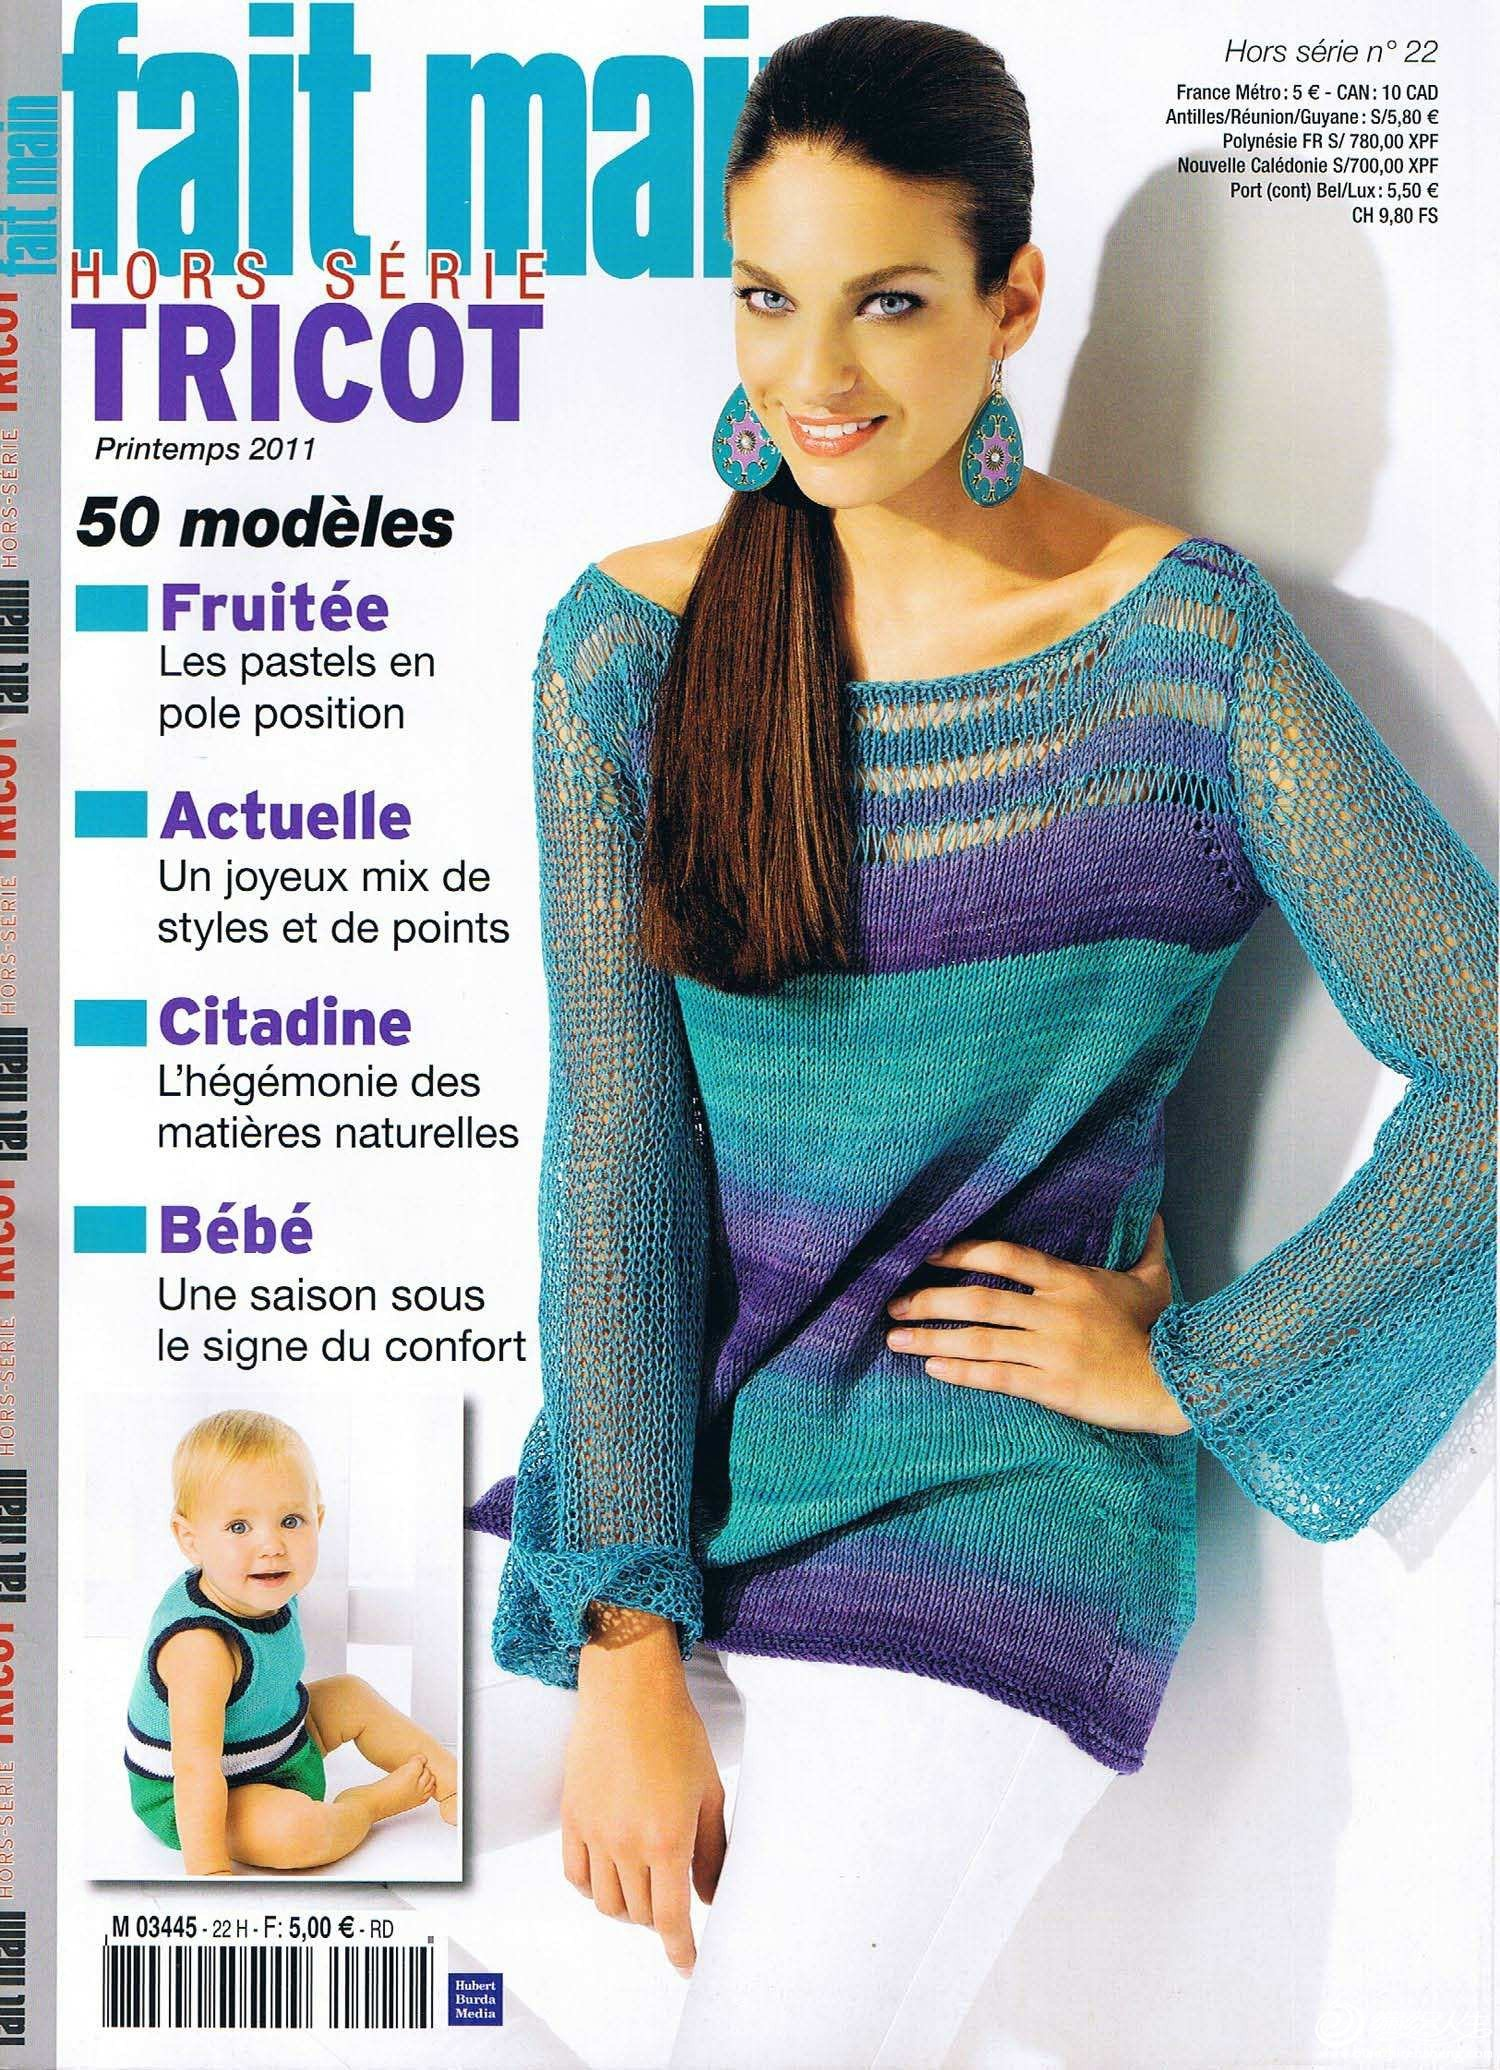 FAMILLE-FAITMAINTRICOT-HS22_page1_image1.jpg